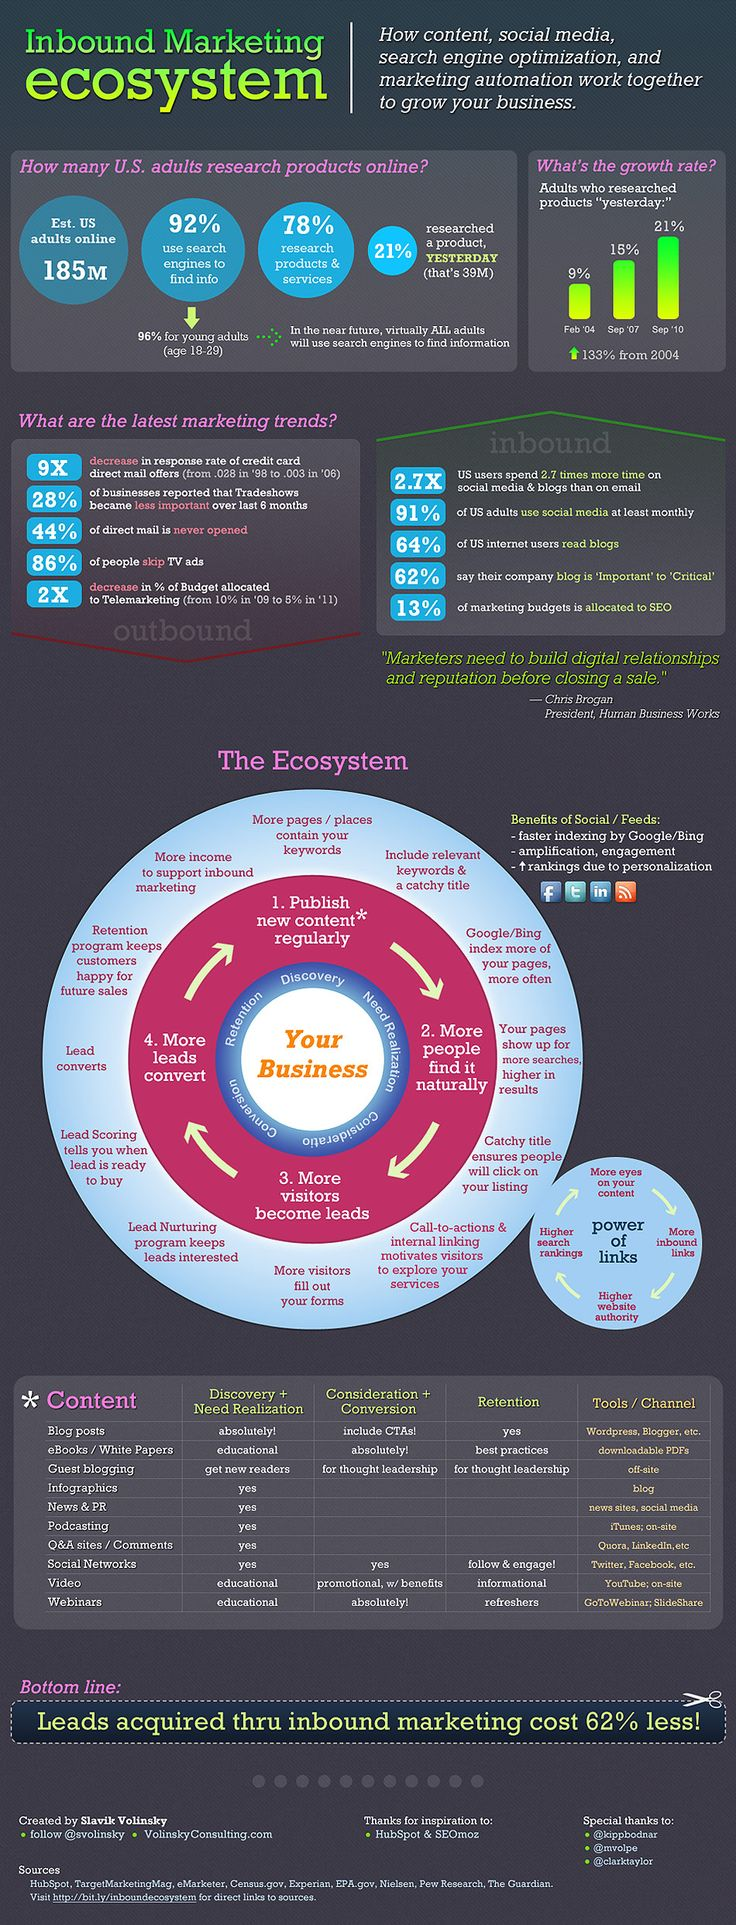 The Inbound Marketing Ecosystem - How content, social media, SEO, and marketing automation work together to grow your business. Small business marketing strategies.